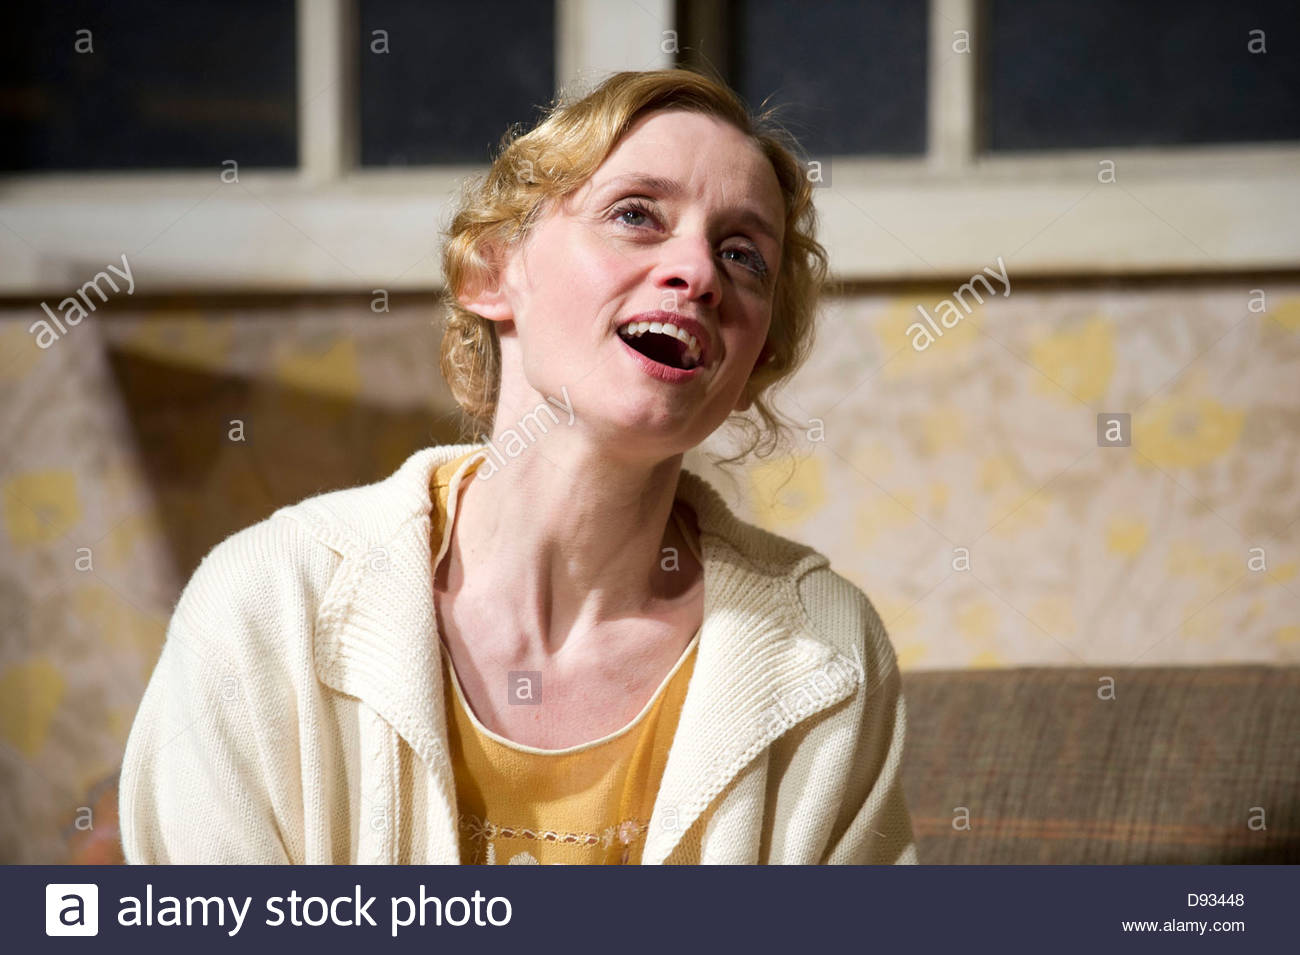 Strange Interlude by Eugene O'Neill, directed by Simon Godwin. With Anne-Marie Duff as Nina Leeds, Opens at - Stock Image